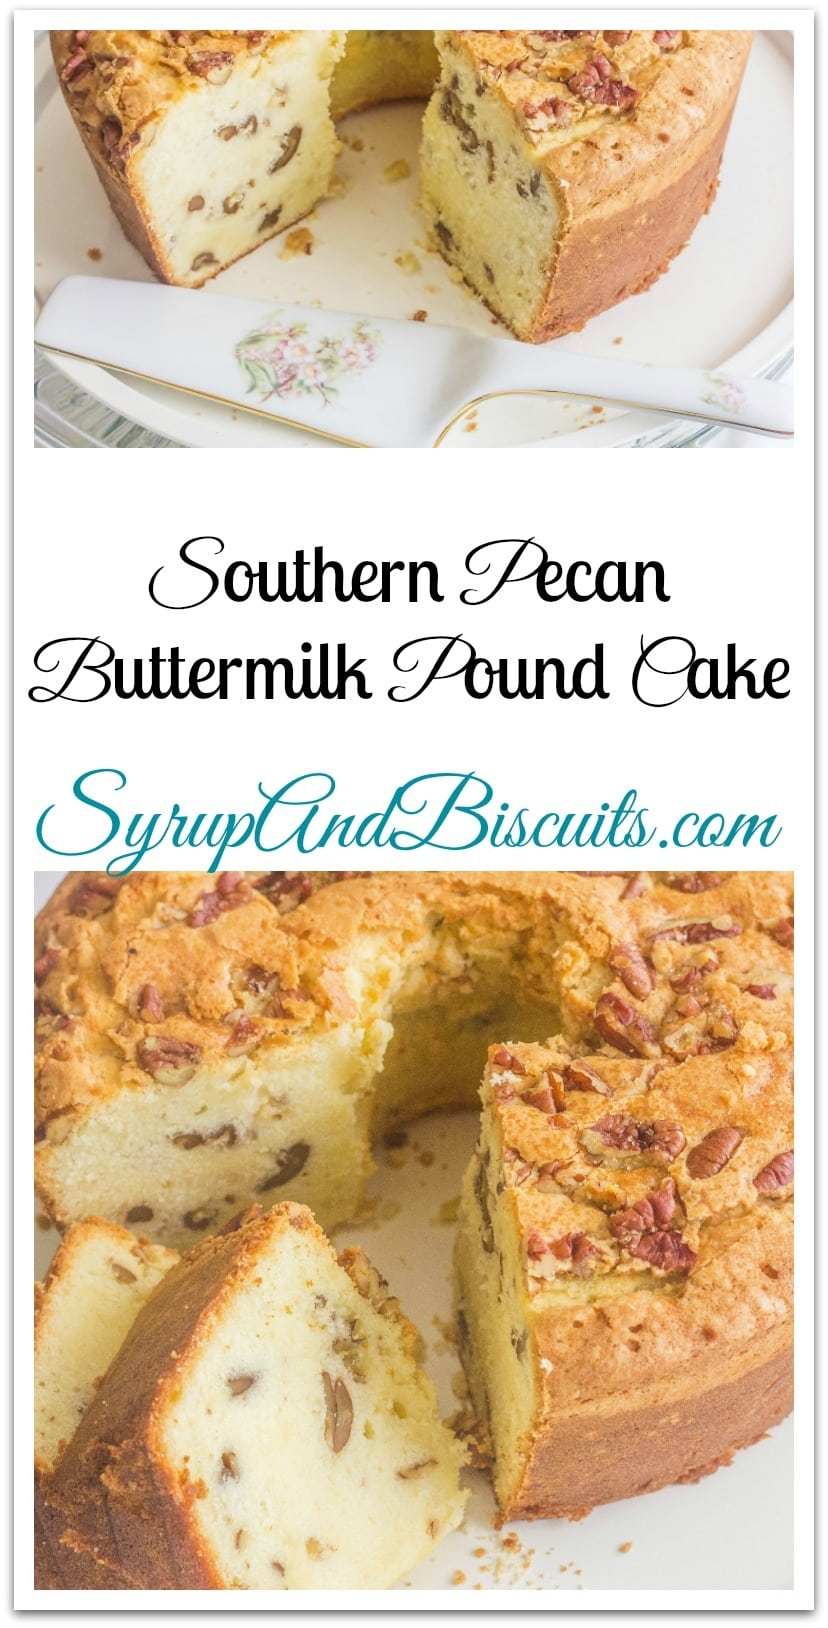 Southern Pecan Buttermilk Pound Cake. A traditional Southern pound cake with added flavor from pecans. Pound cakes are best know for their dense texture. #syrupandbiscuits #PoundCake #SouthernPecan